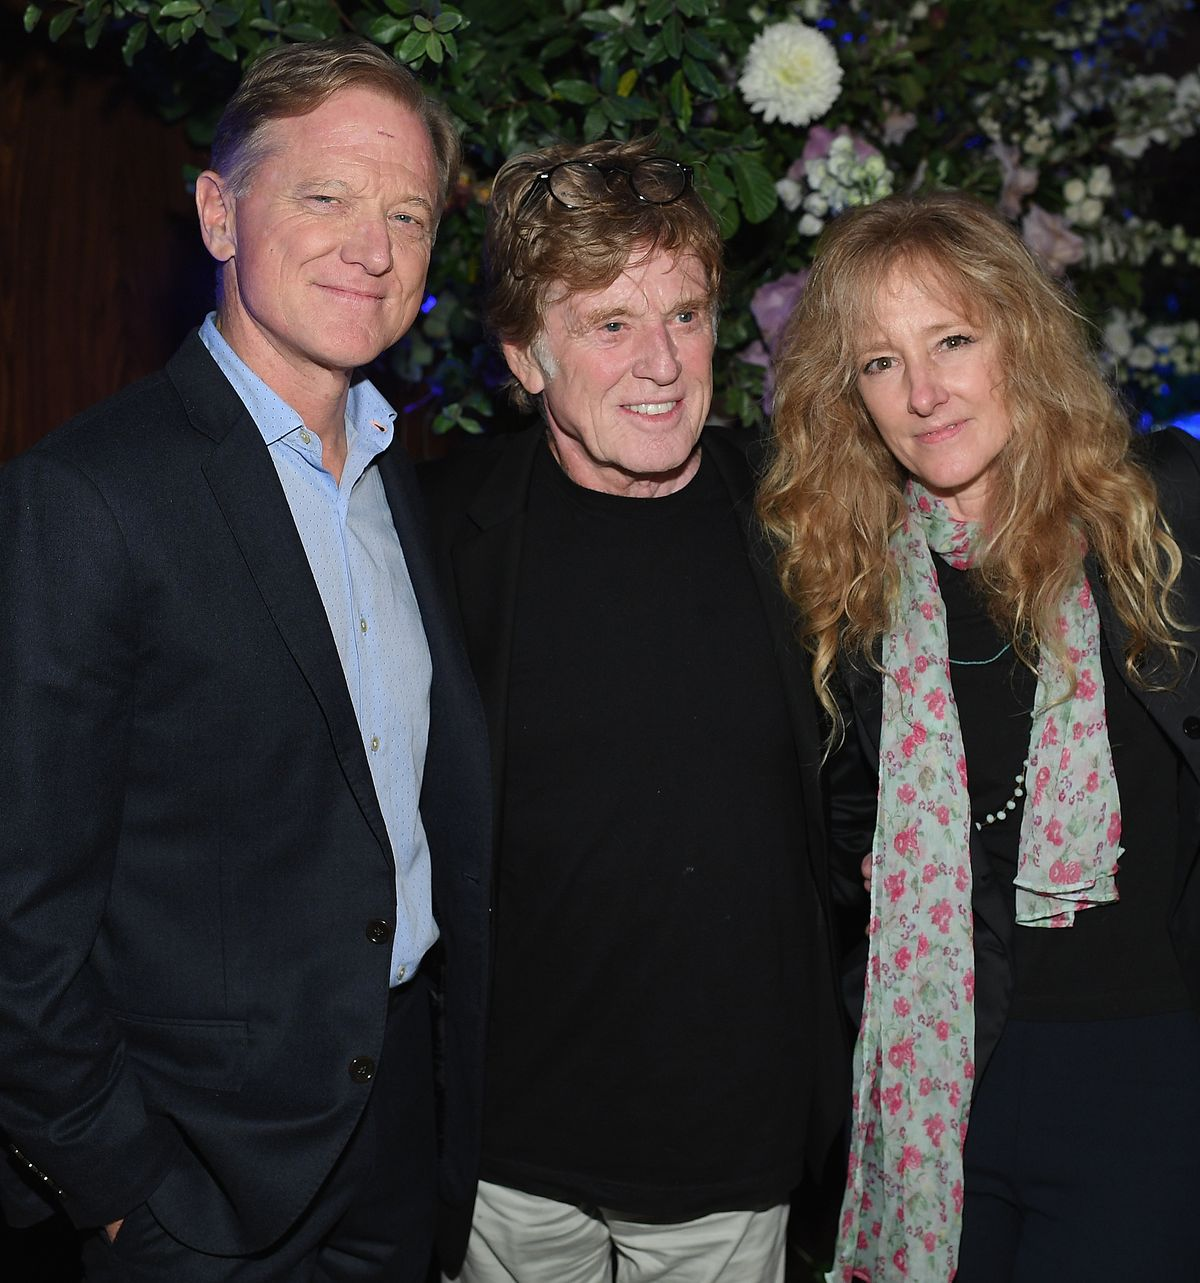 James Redford (L) and his parents Robert Redford and Shauna Redford attend the premiere of